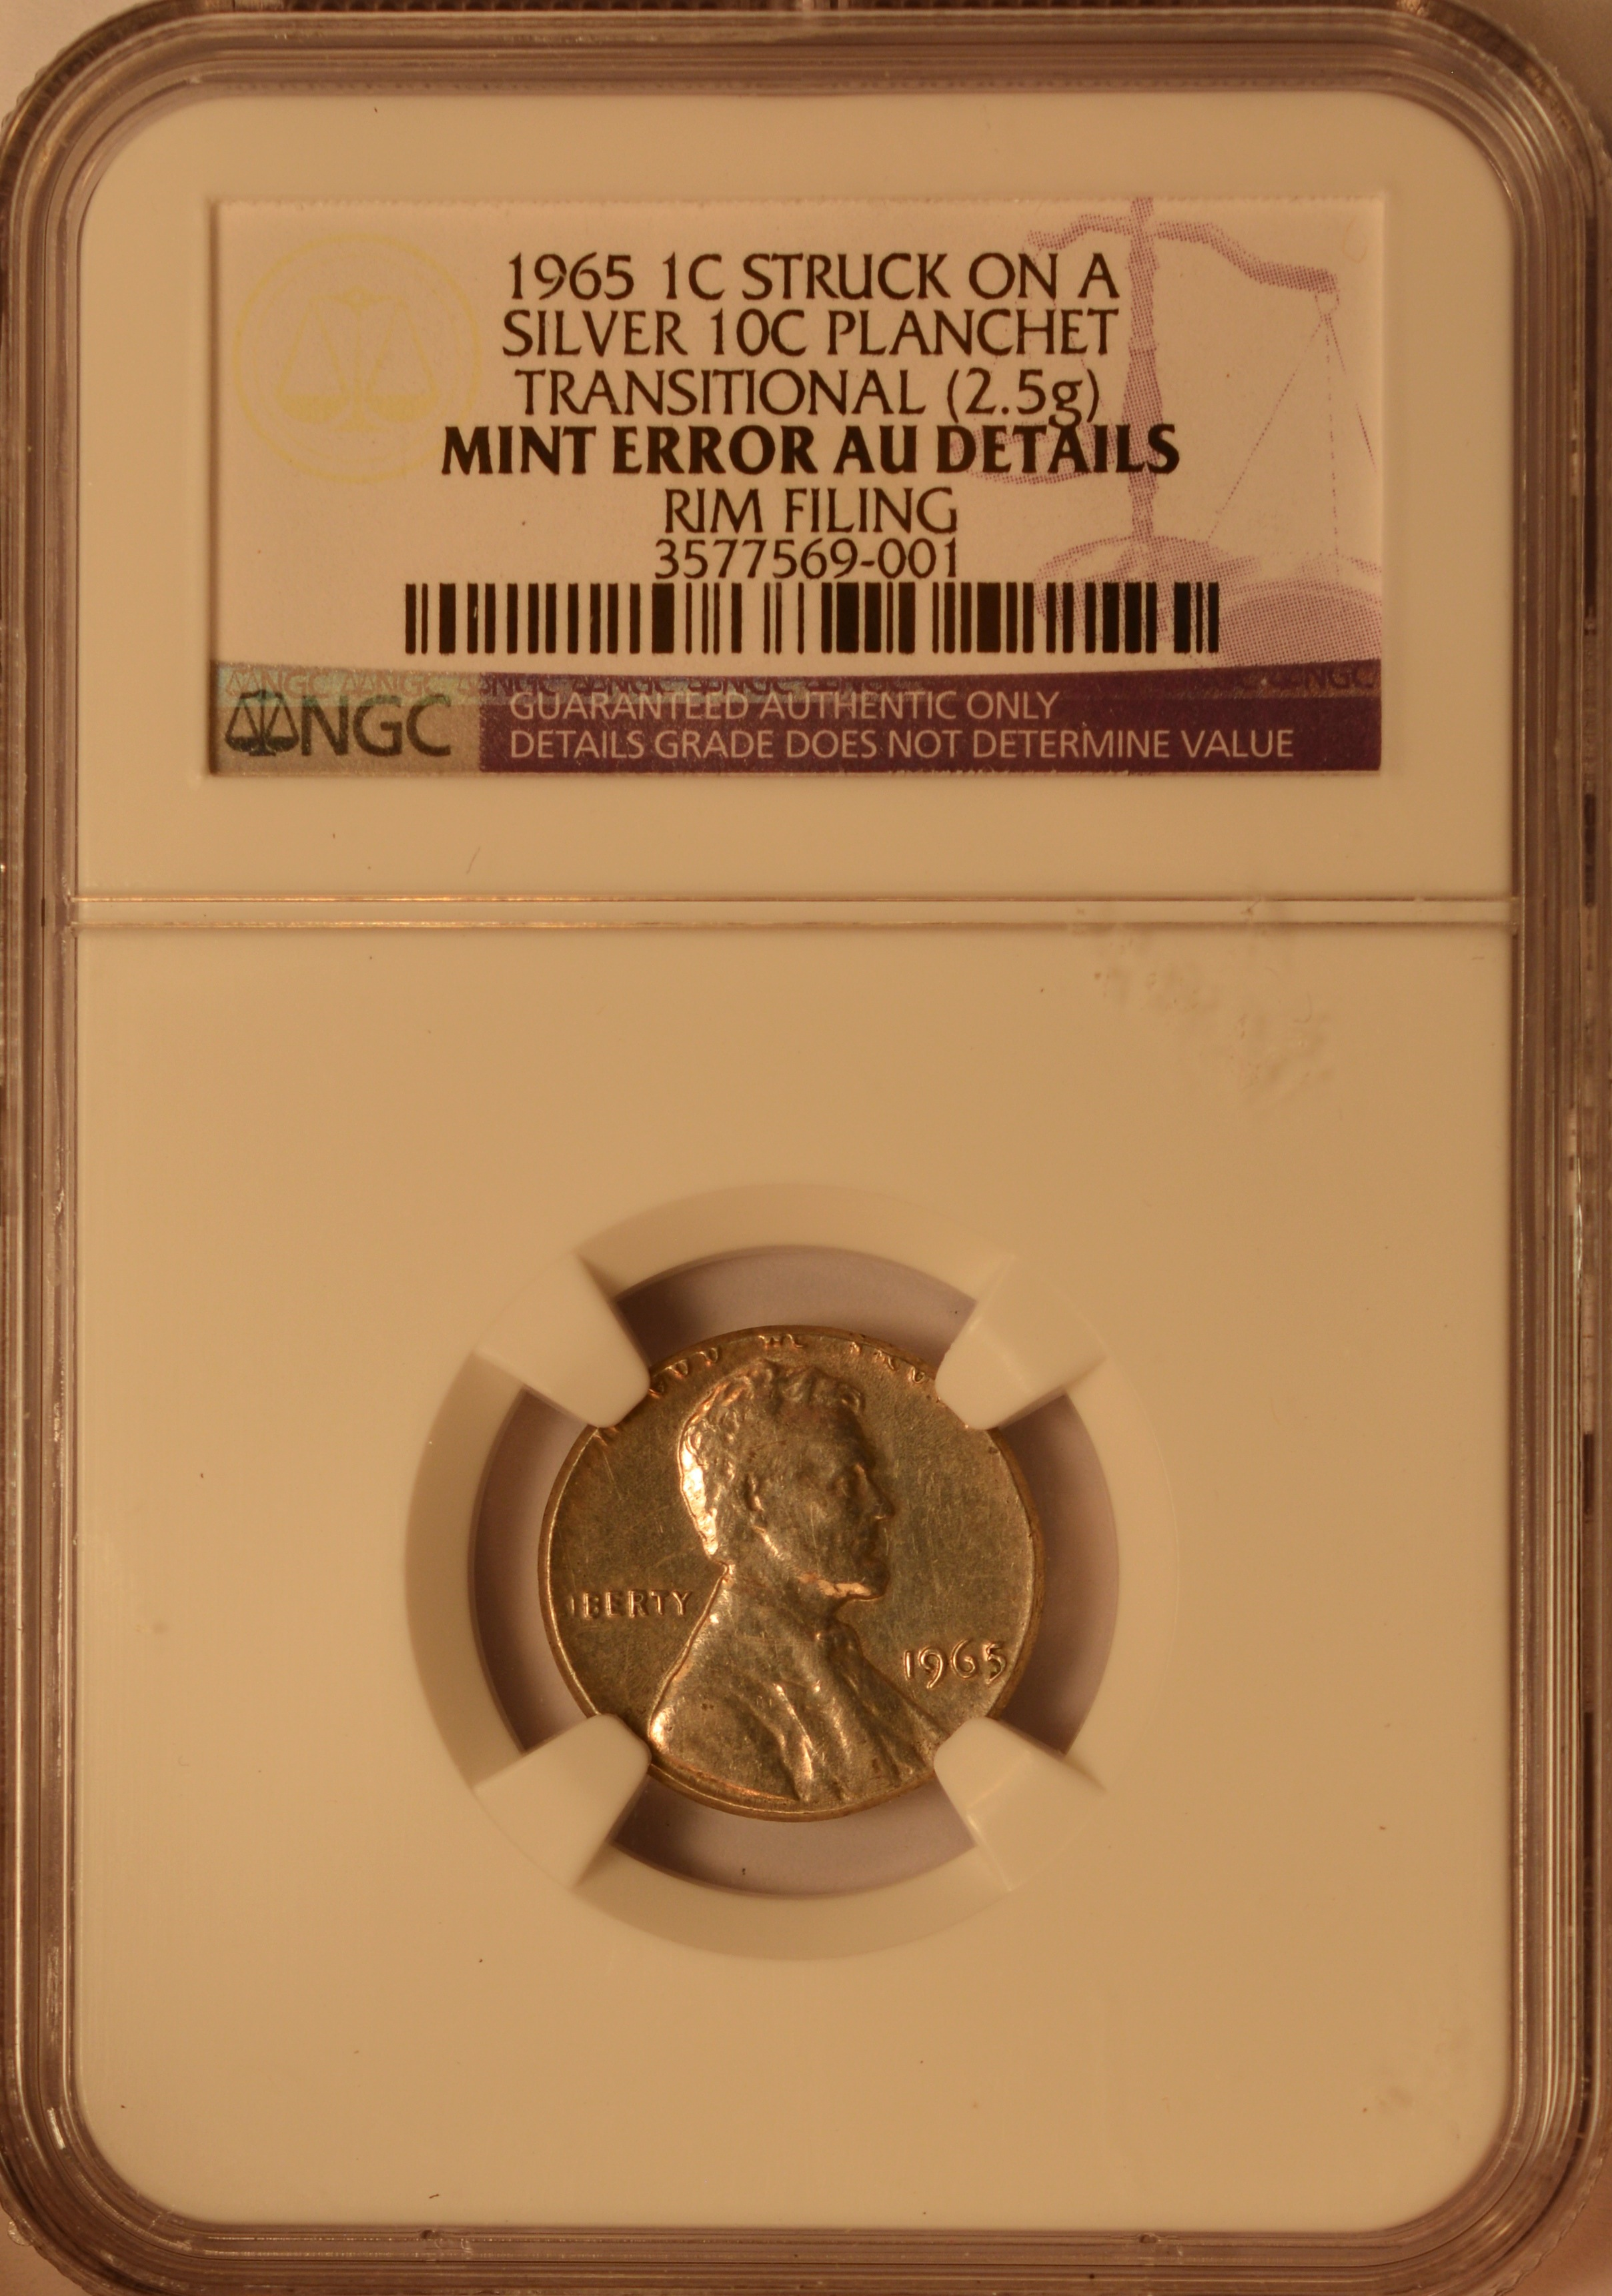 NGC 1965 Lincoln Cent Struck On A 90 Silver Roosevelt Dime Planchet And Is Transitional Off Metal The Leftover Which Was